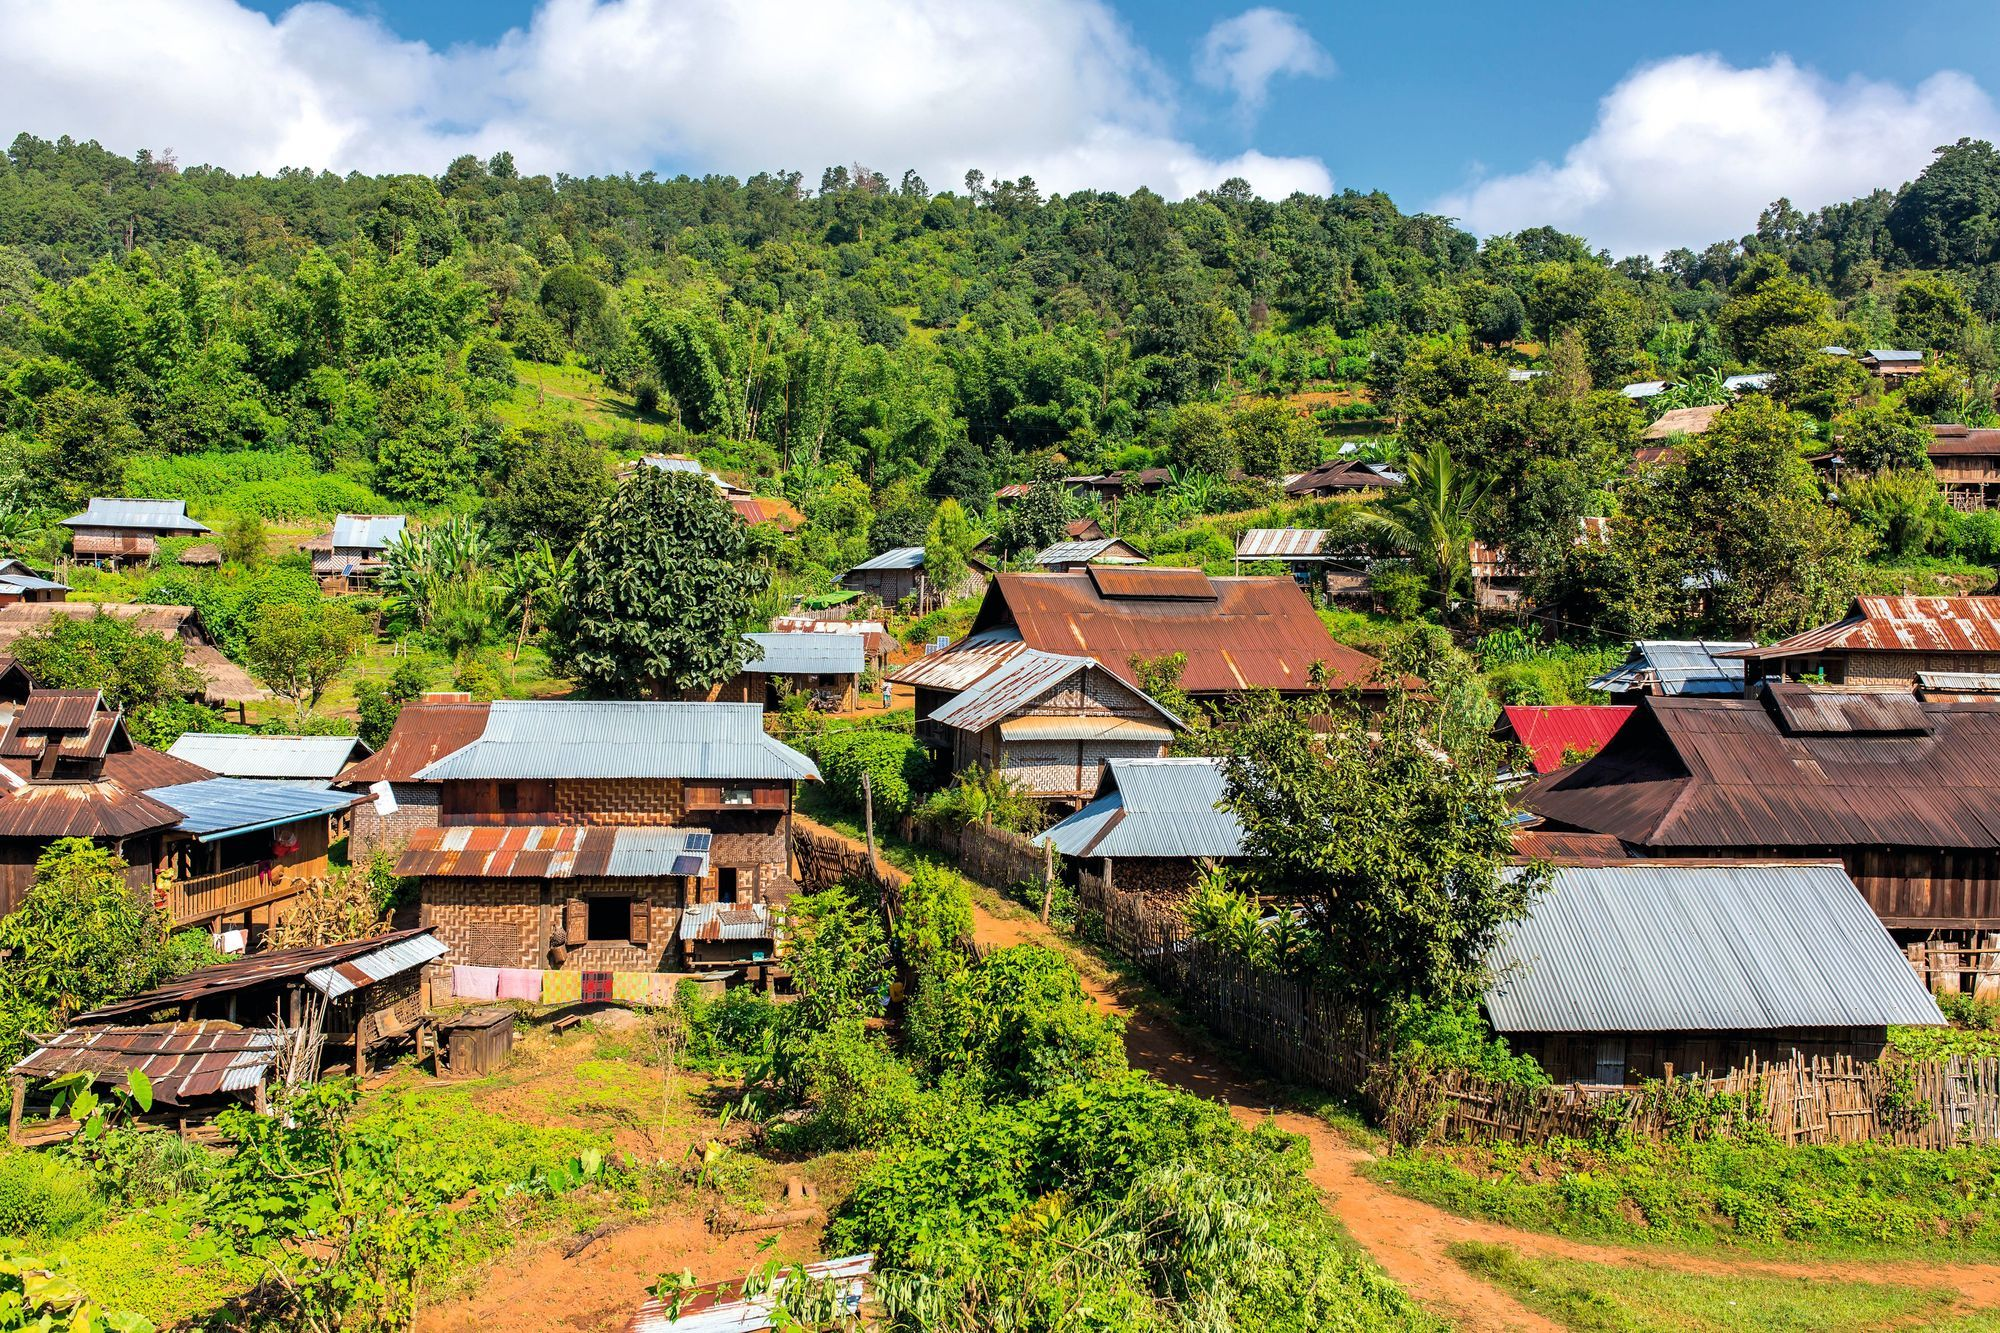 Un village rural, Laos